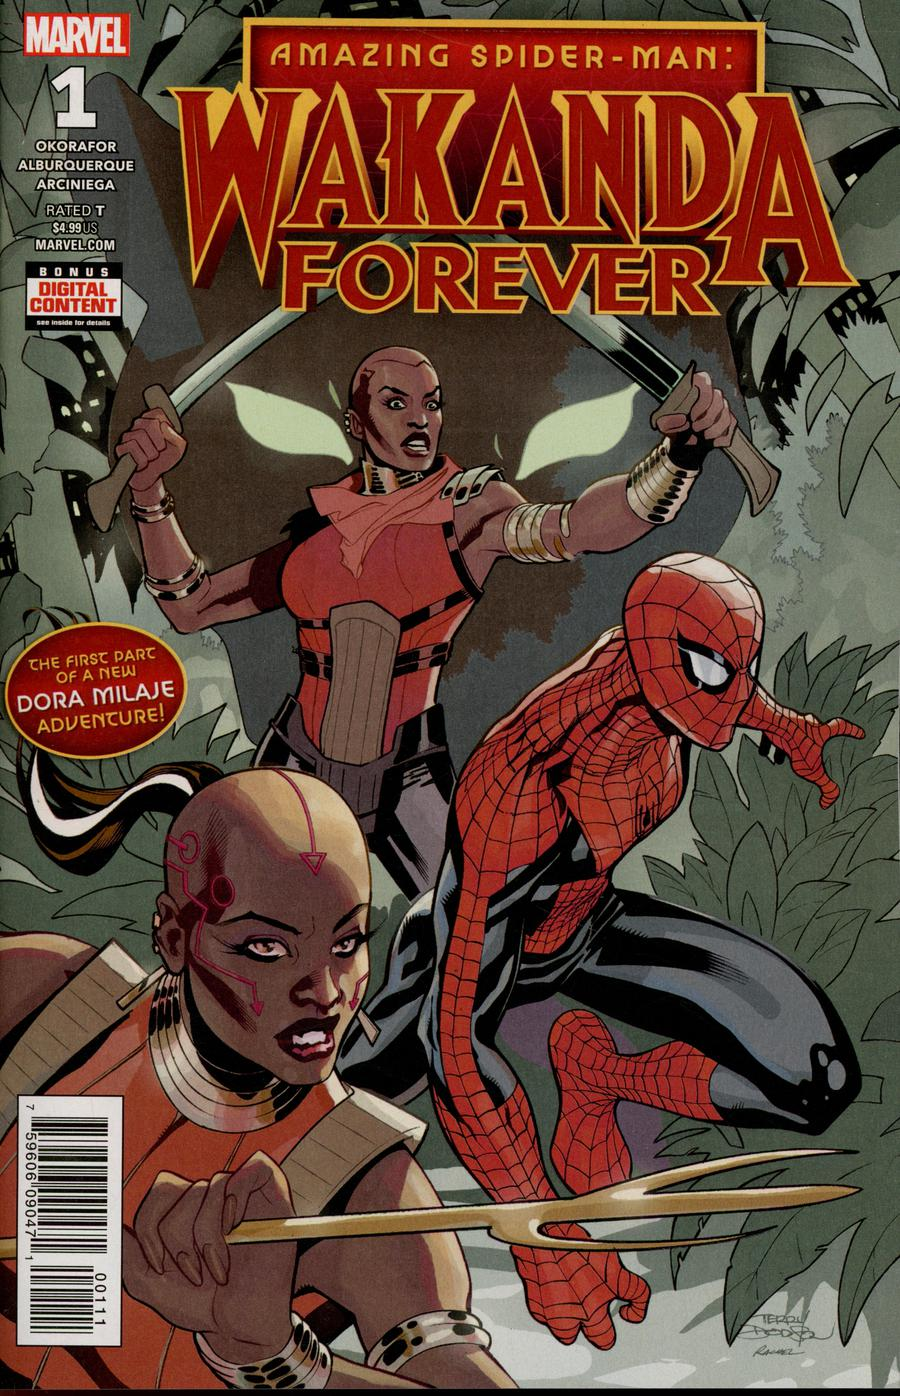 Wakanda Forever Amazing Spider-Man #1 Cover A Regular Terry Dodson Cover (Wakanda Forever Part 1)